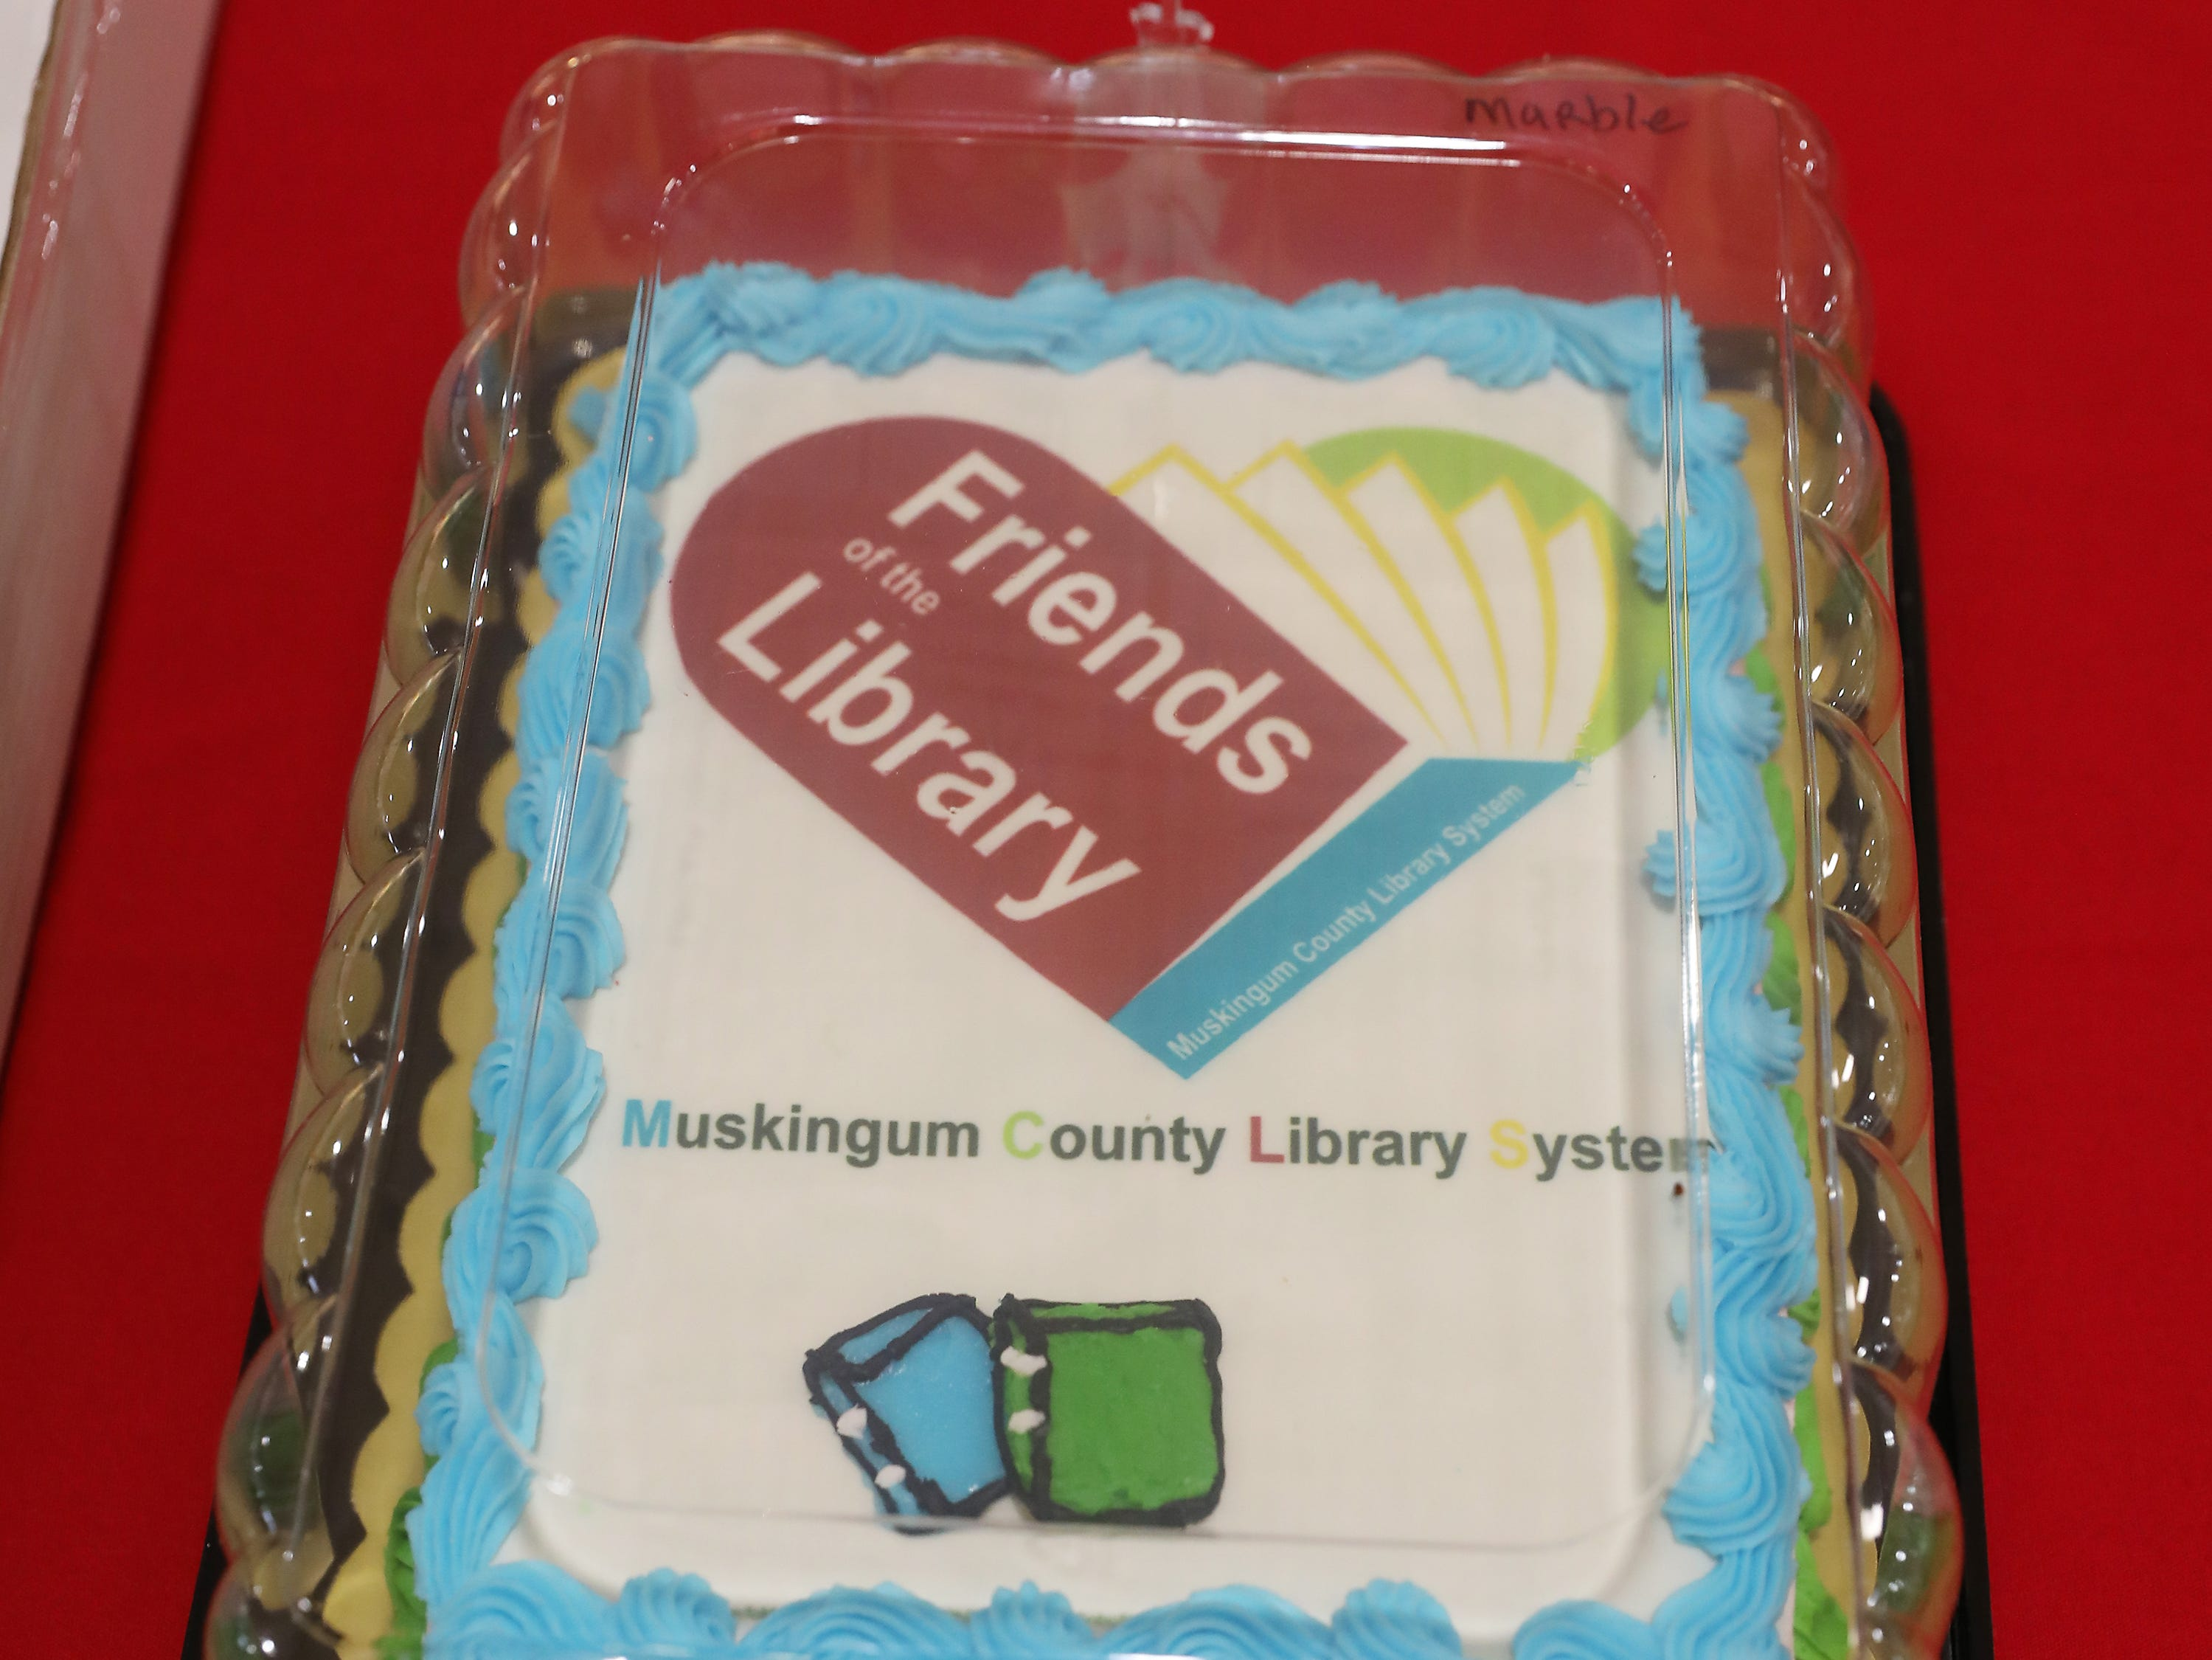 9:15 A.M. Friday cake 232 Muskingum County Library System - books, tablet, magnifying bookmark, membership in the Friends of the Library Volunteer Group; $150